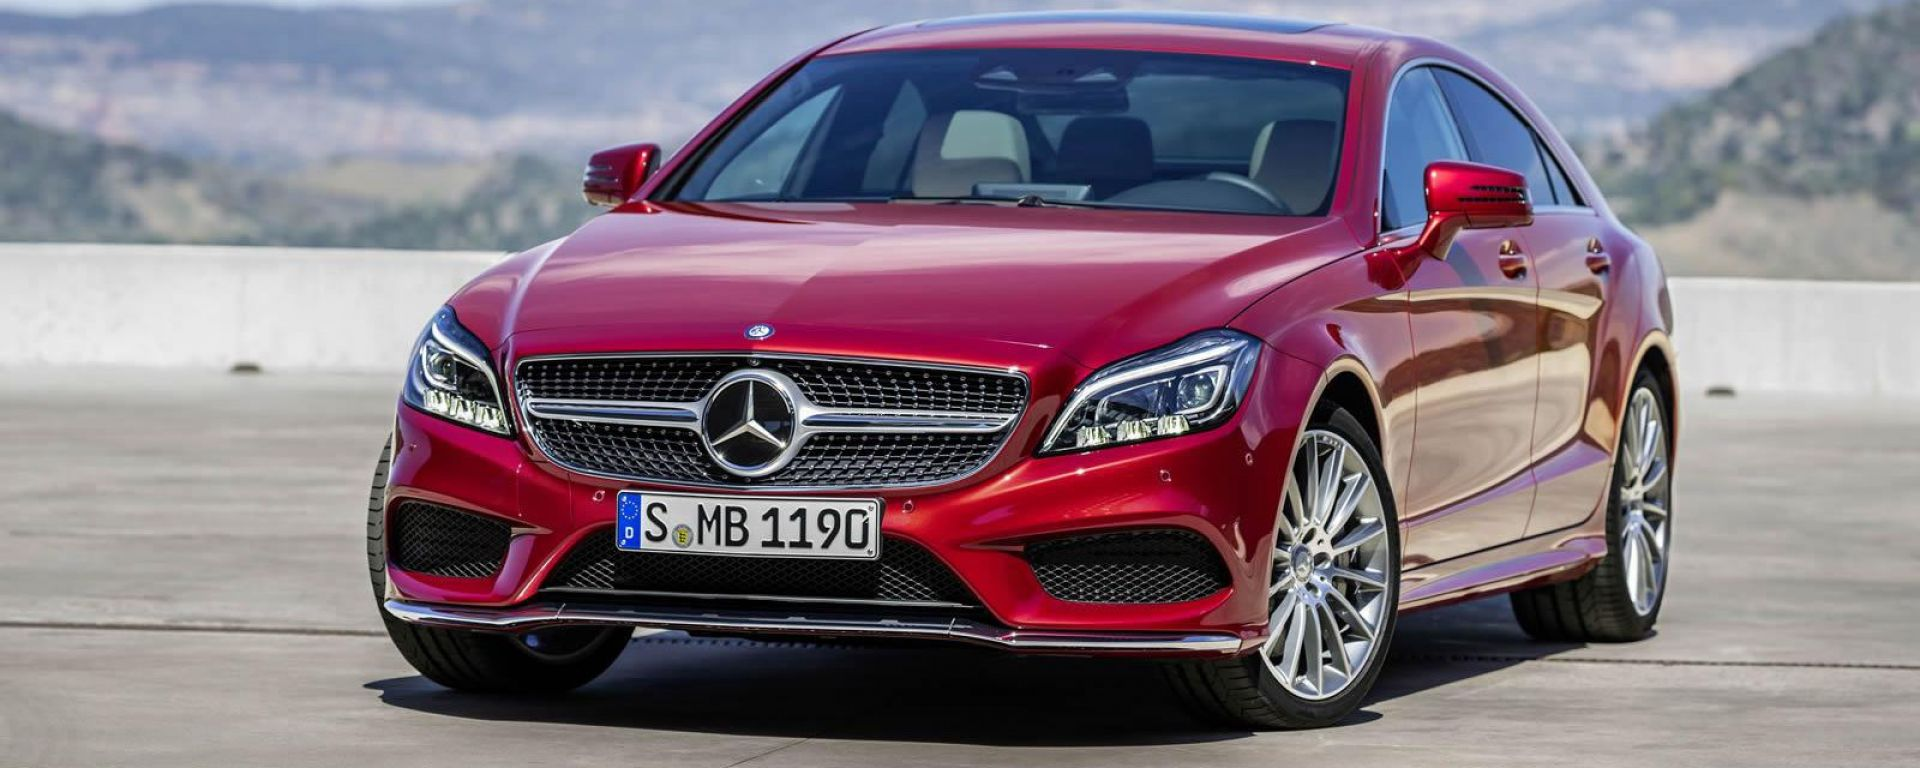 Mercedes CLS MY 2015